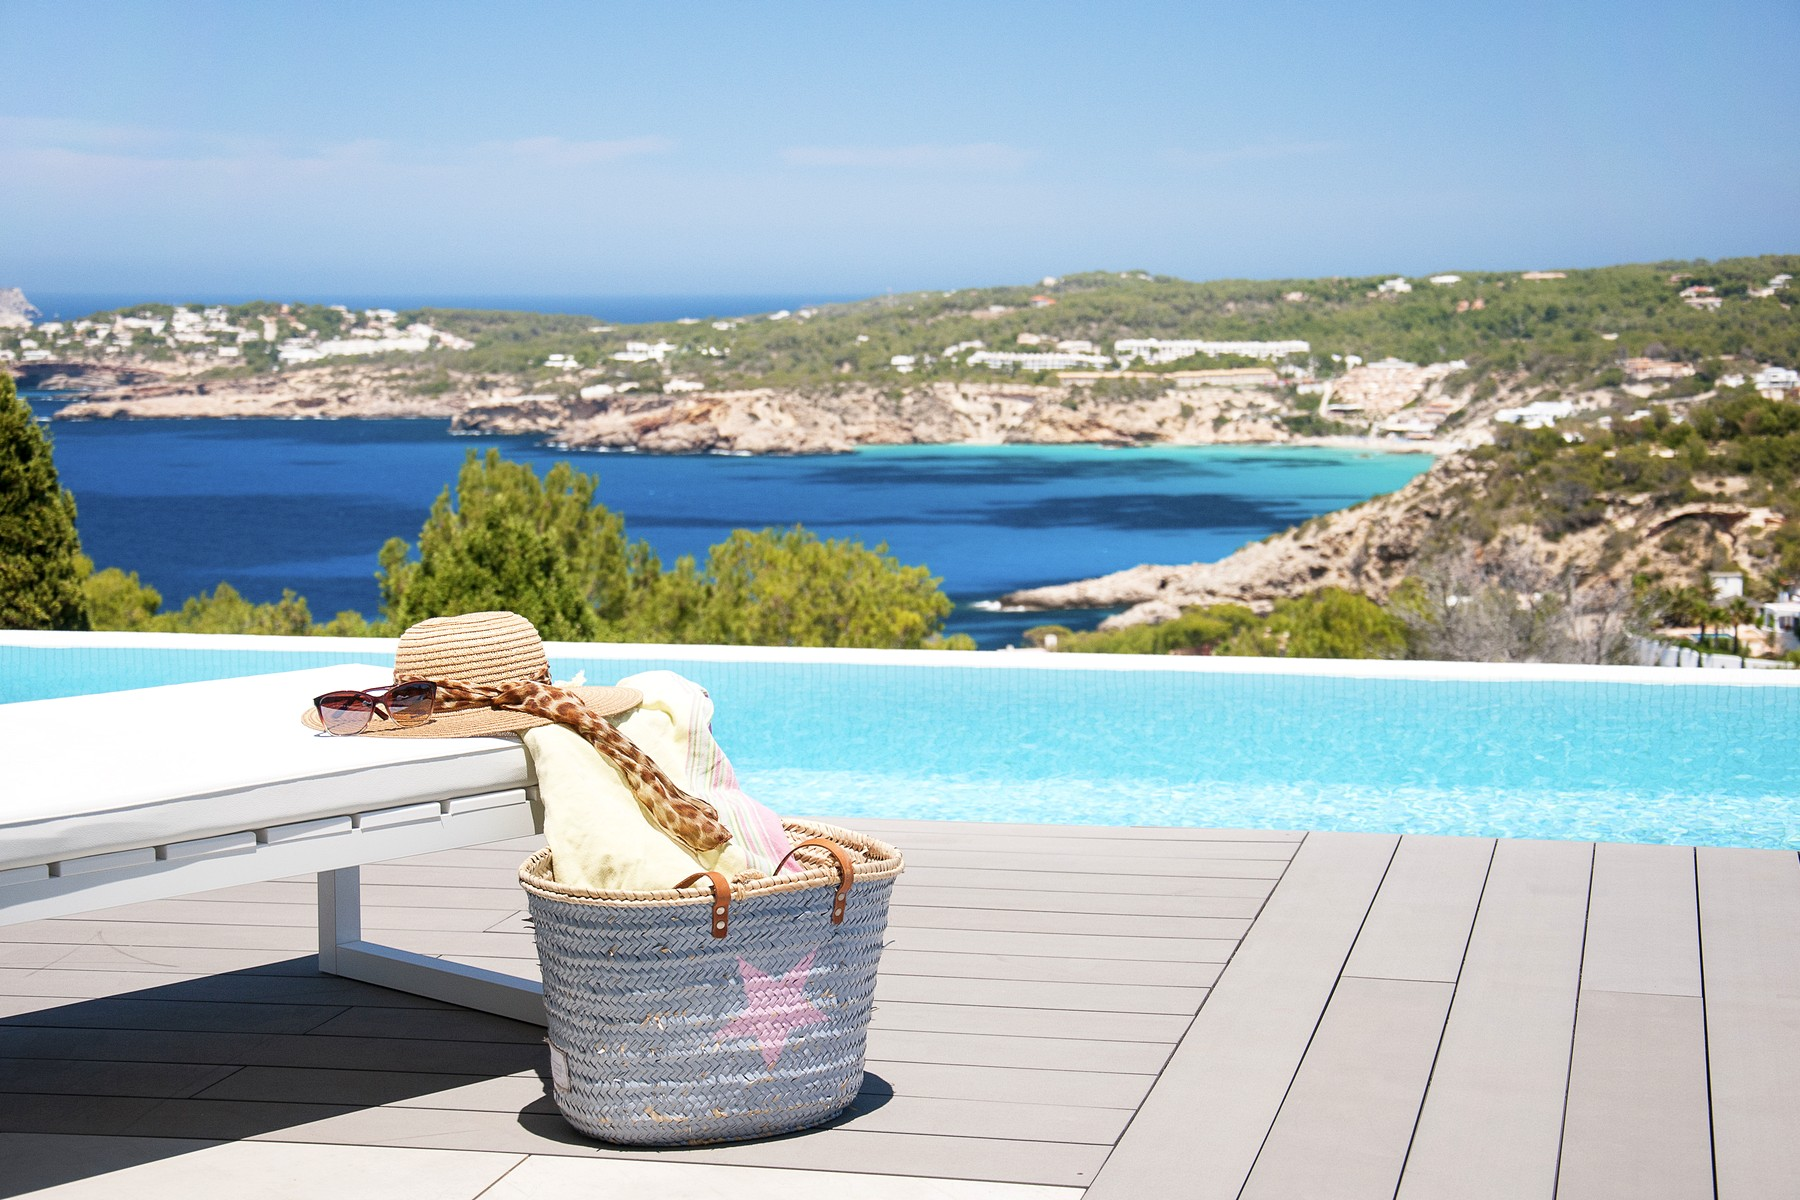 Tek Ailelik Ev için Satış at Contemporary Sea View Villa In Cala Moli Ibiza, Ibiza, 08030 Ispanya